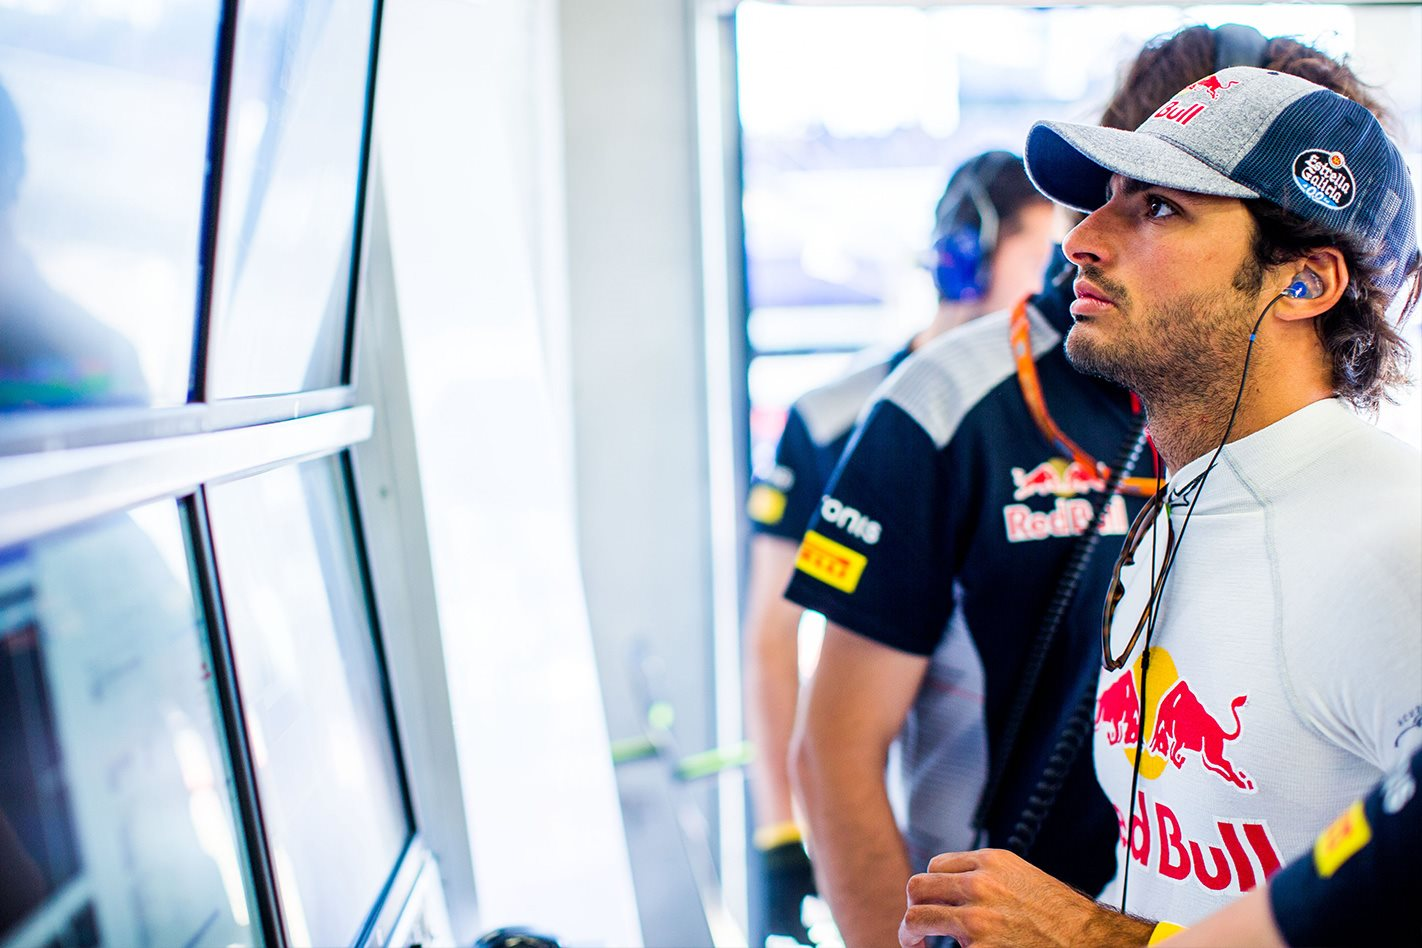 Carlos Sainz signs with Renault, McLaren to acquire Renault engines